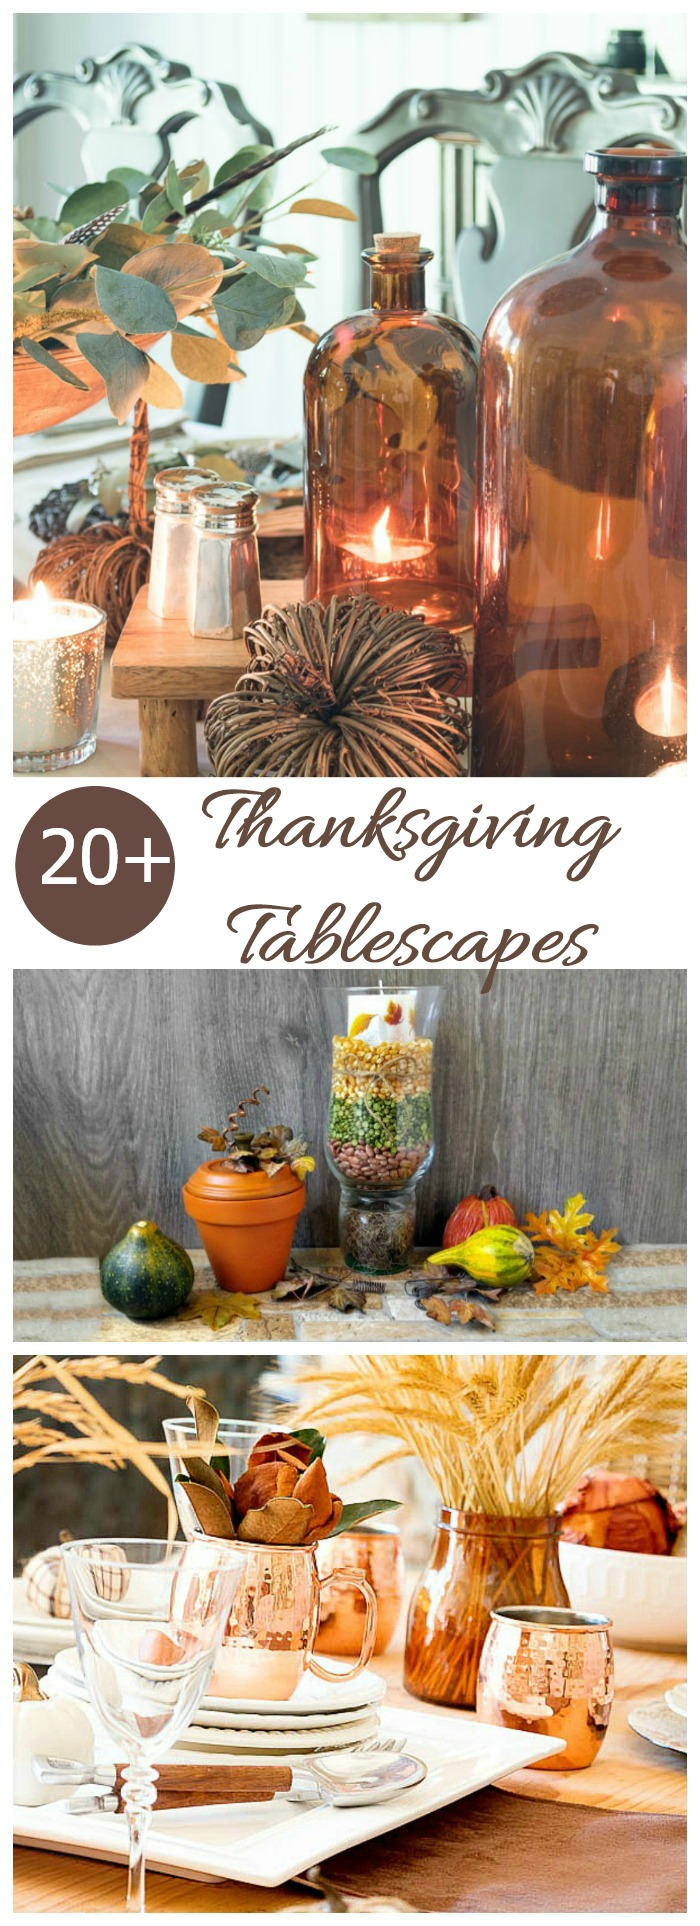 Thanksgiving Tablescapes - DIY Easy Thanksgiving Table IdeasThanksgiving